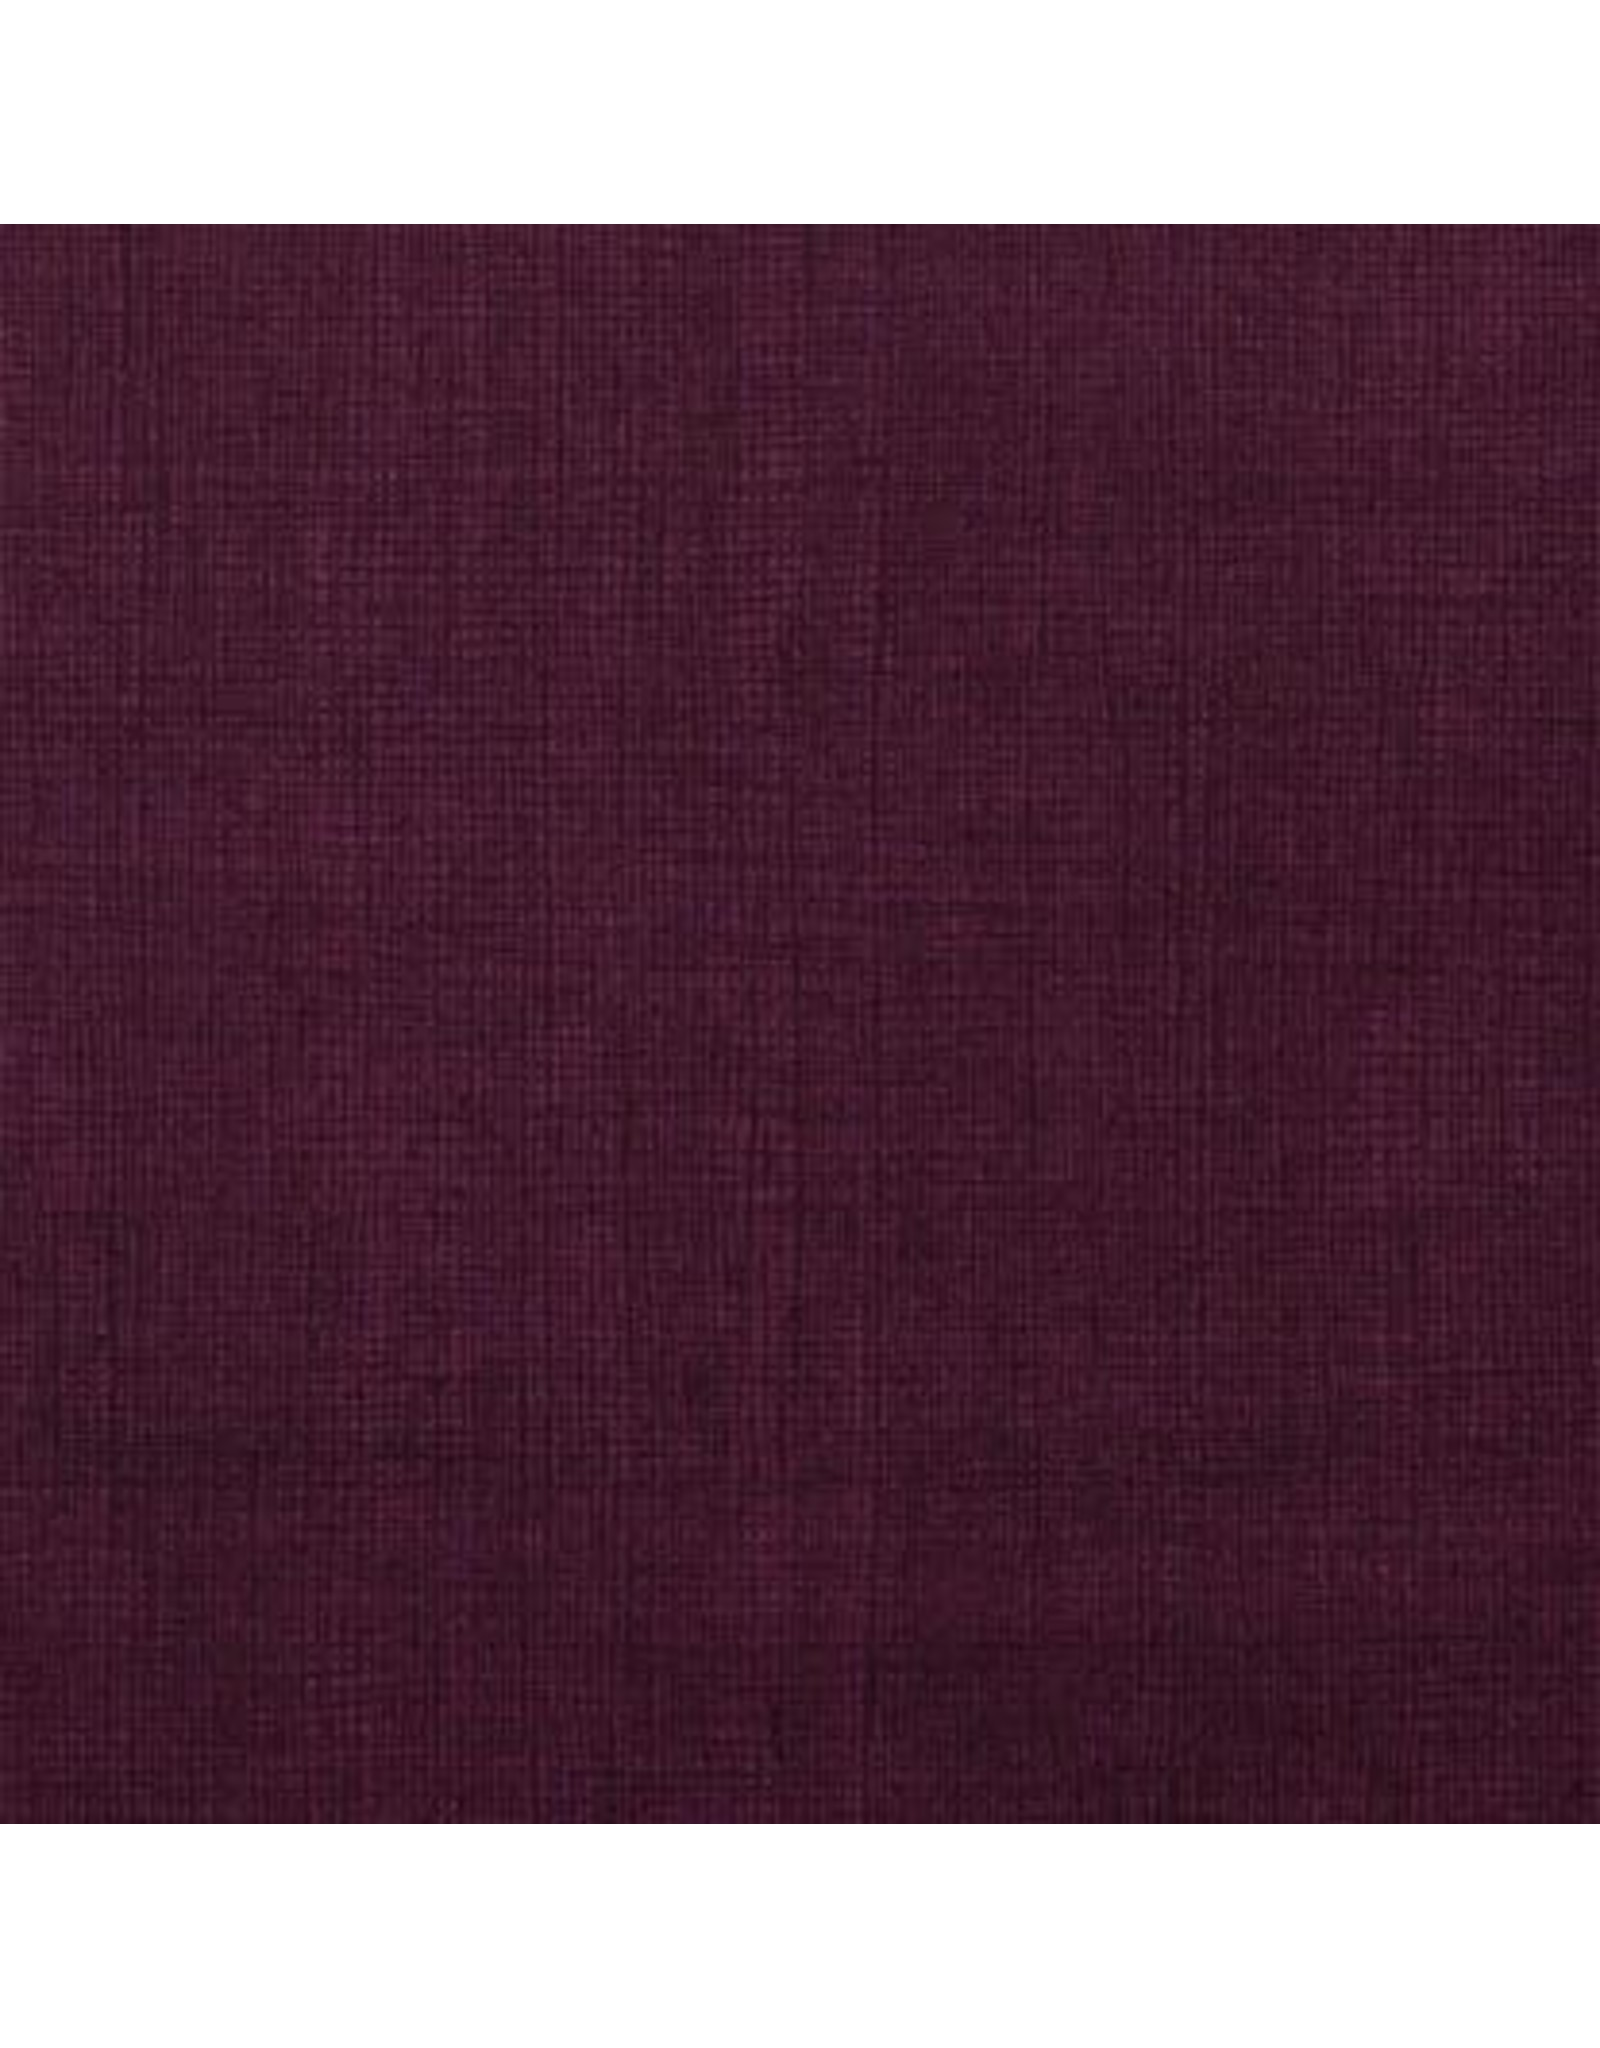 Alexander Henry Fabrics Heath in Eggplant, Fabric Half-Yards 6883 SR